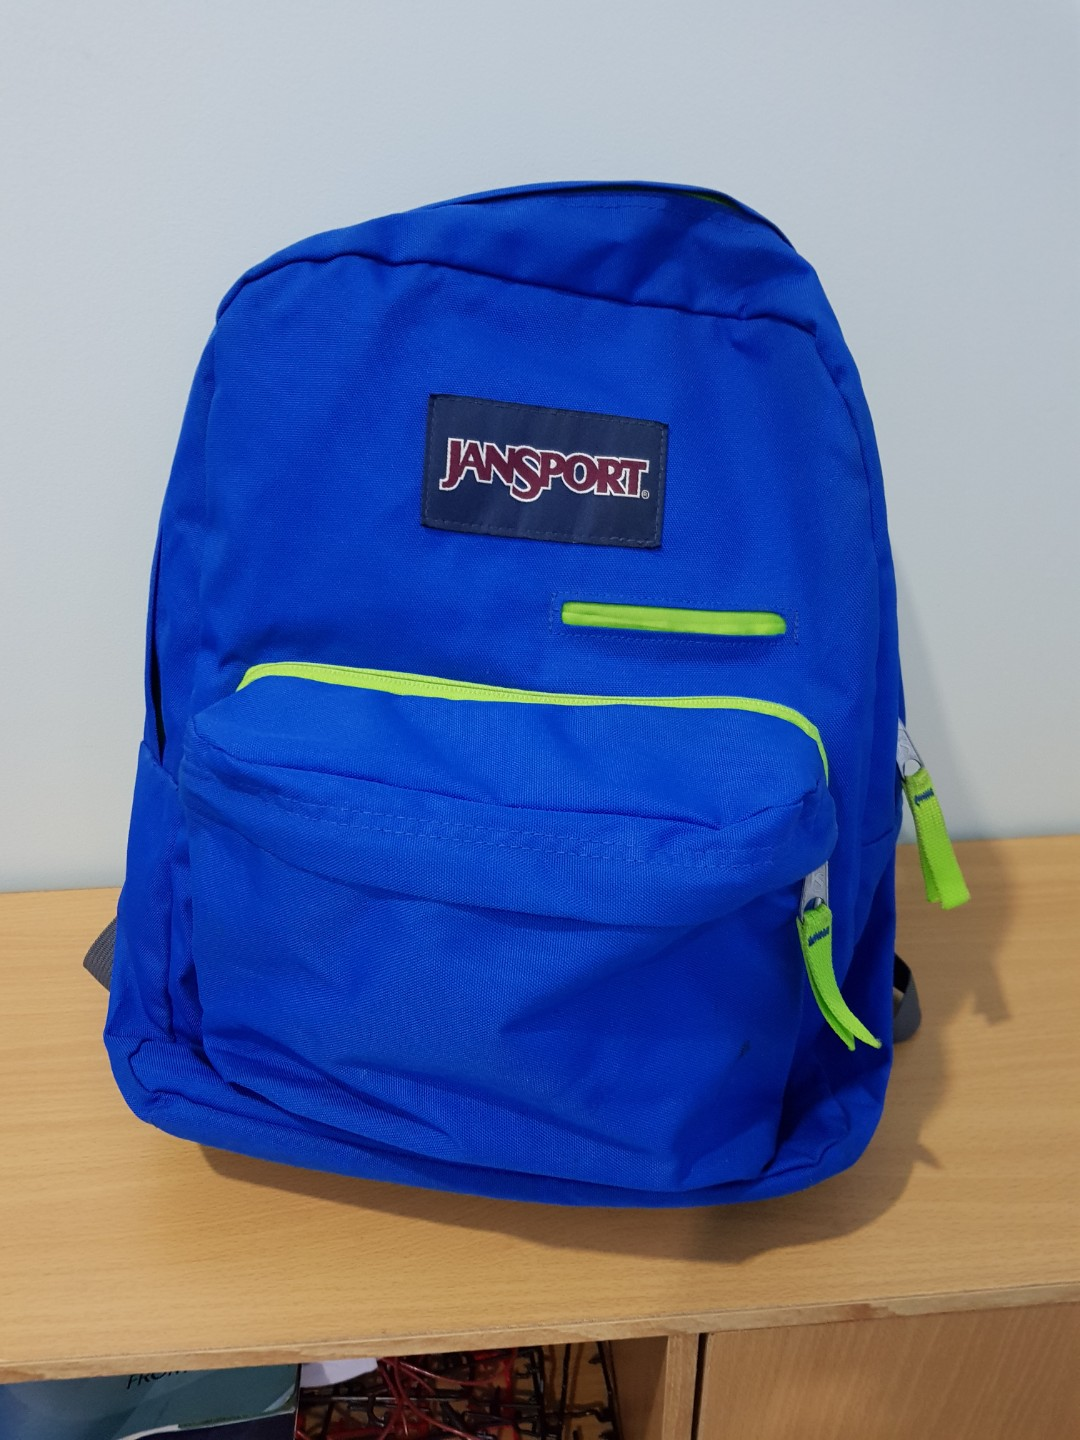 Jansport Backpack Sale Singapore - Swiss Paralympic